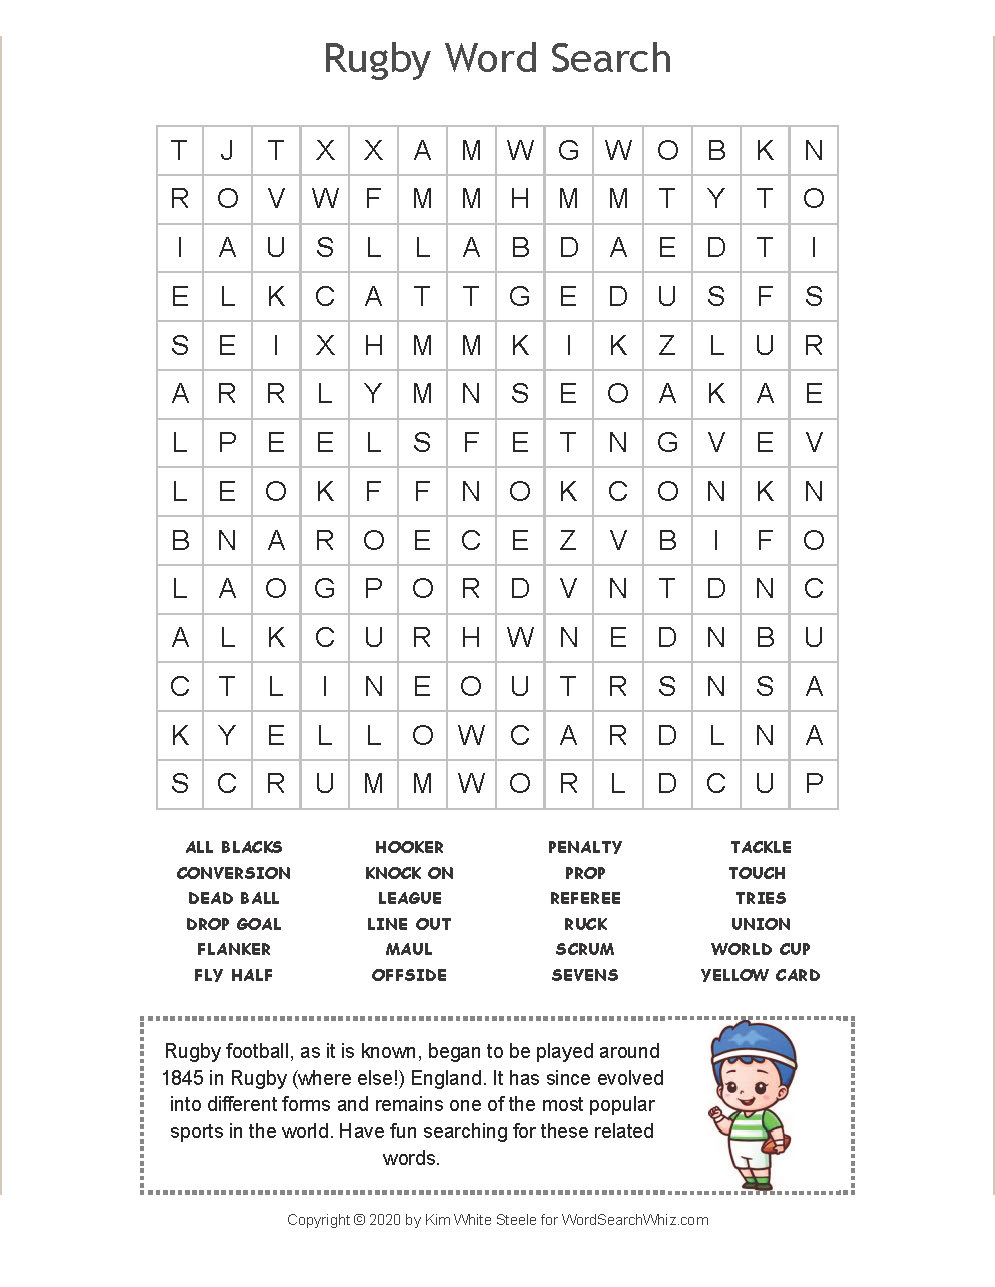 Pin on Free Online Word Search Puzzle Games